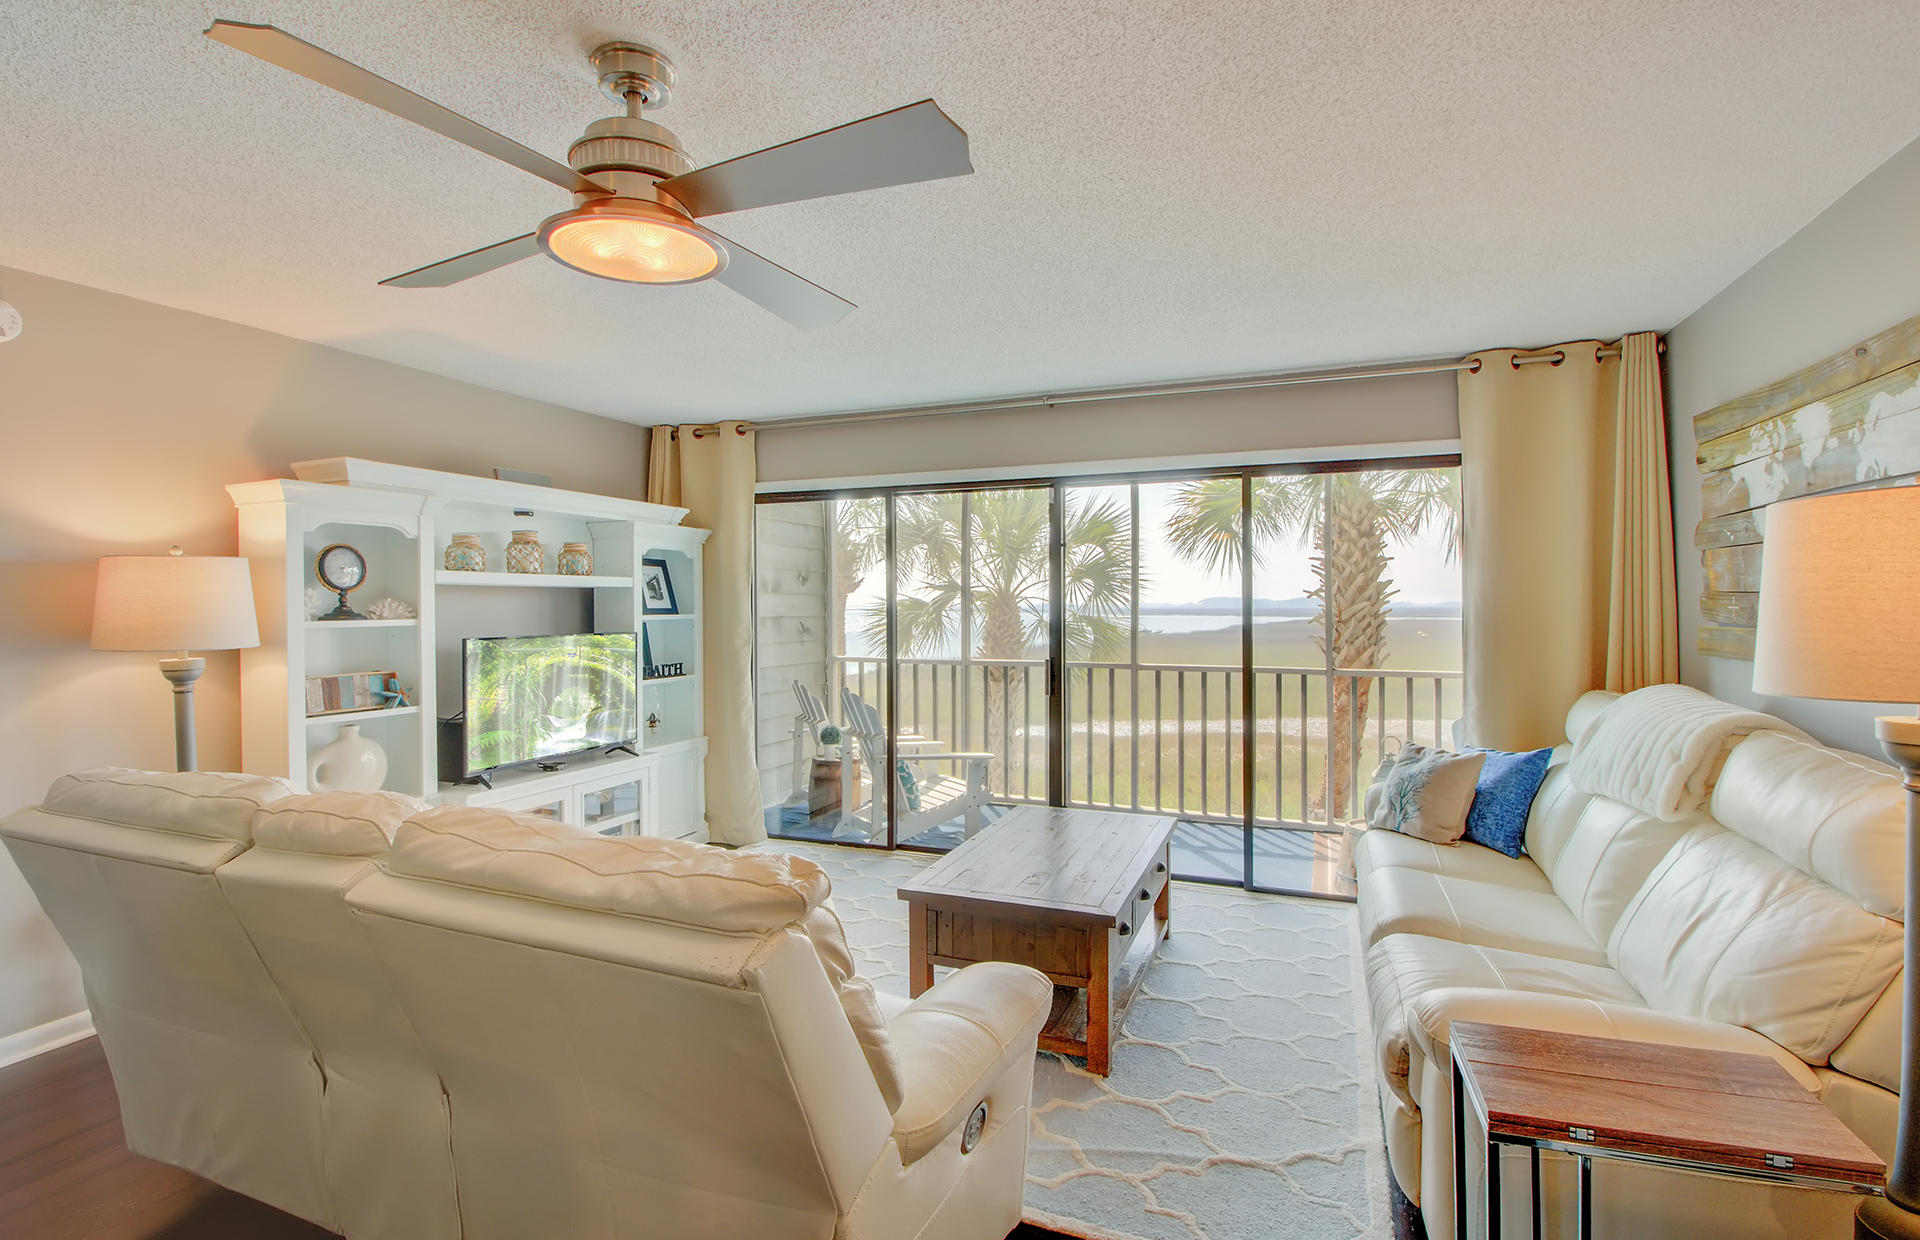 Mariners Cay Homes For Sale - 90 Mariners Cay, Folly Beach, SC - 1